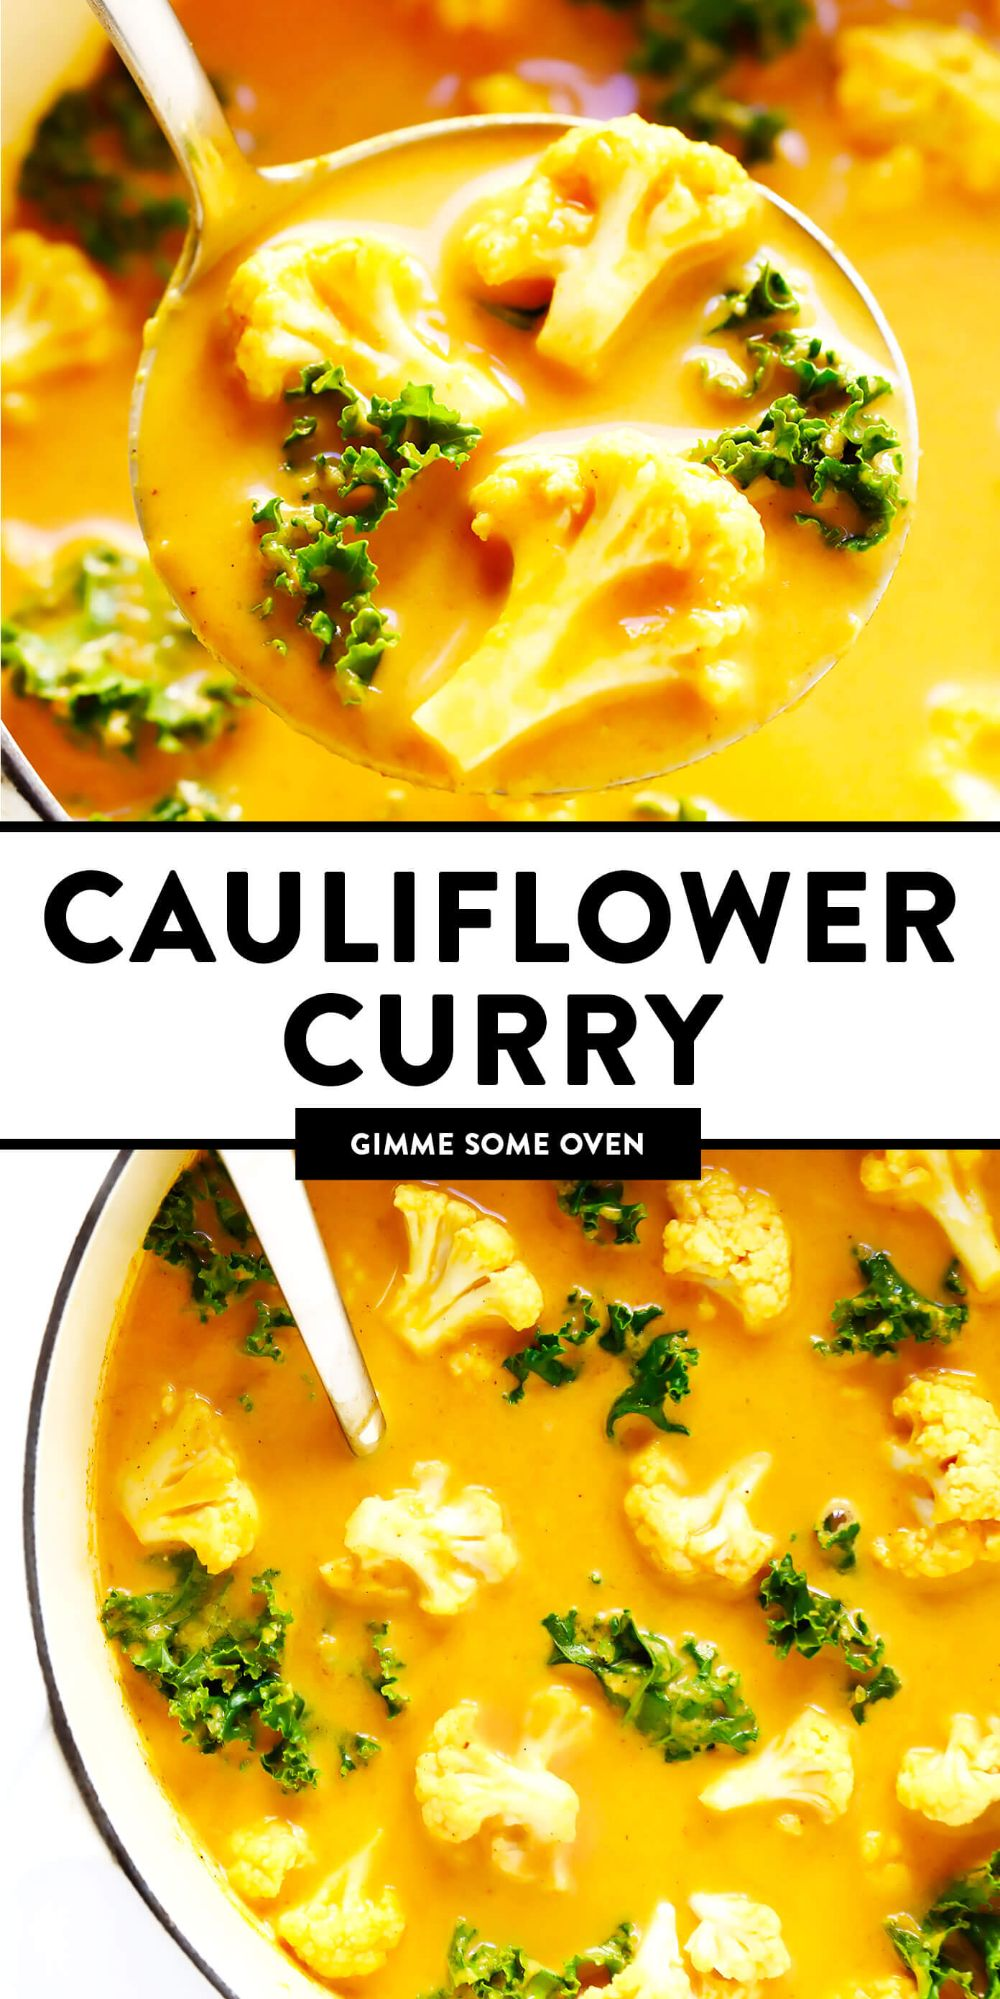 This healthy cauliflower curry recipe is easy to make, naturally gluten-free and vegan, and made with the most delicious creamy broth. It's the perfect one-pot easy dinner recipe that also makes great leftovers for meal prep! | gimmesomeoven.com #cauliflower #curry #soup #indian #dinner #healthy #vegetarian #vegan #glutenfree